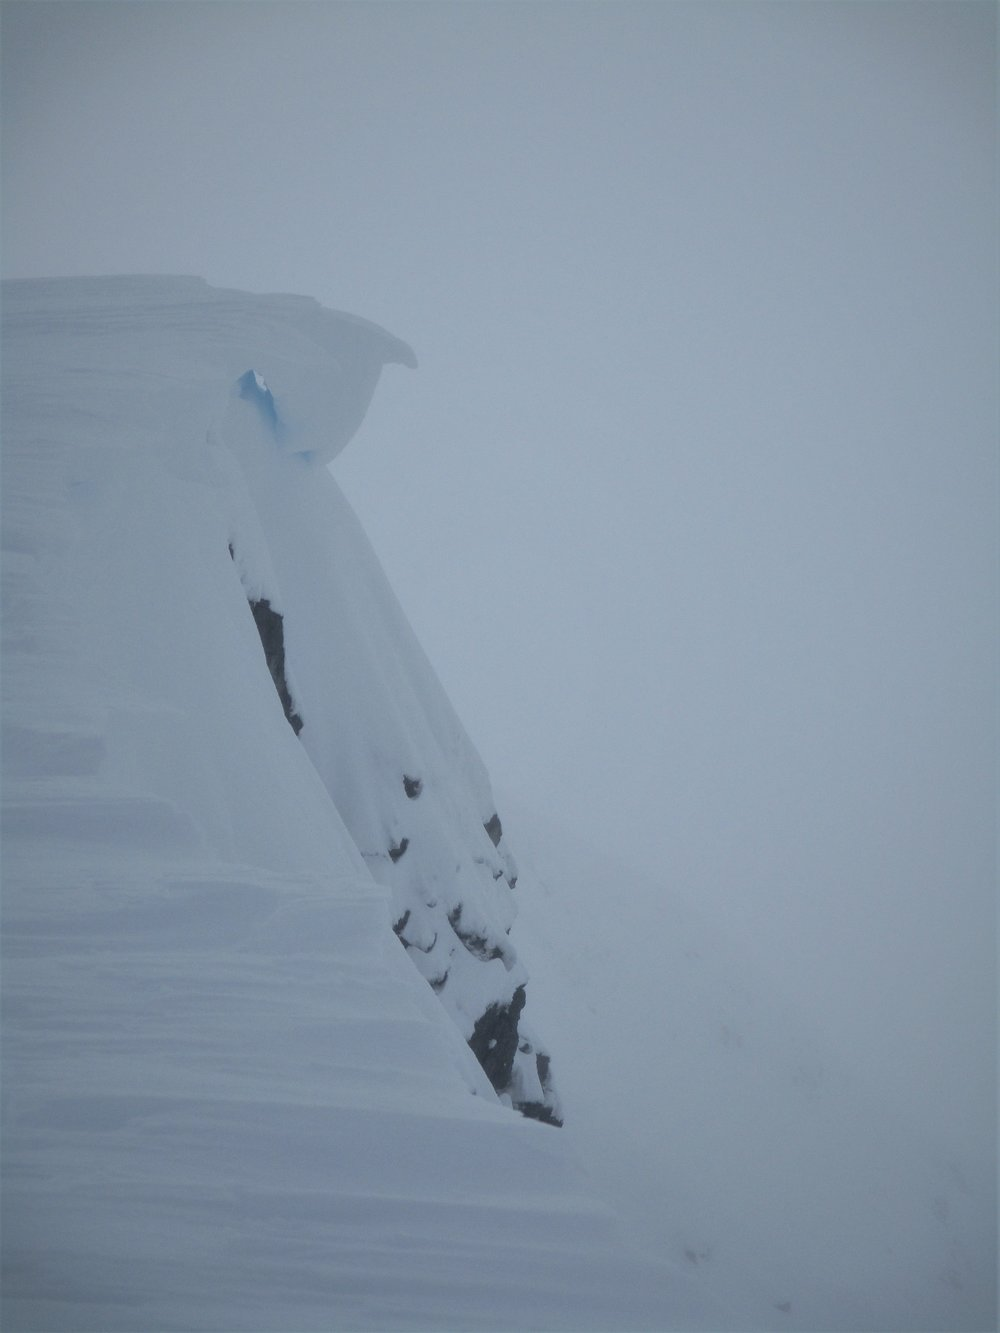 a lonely cornice